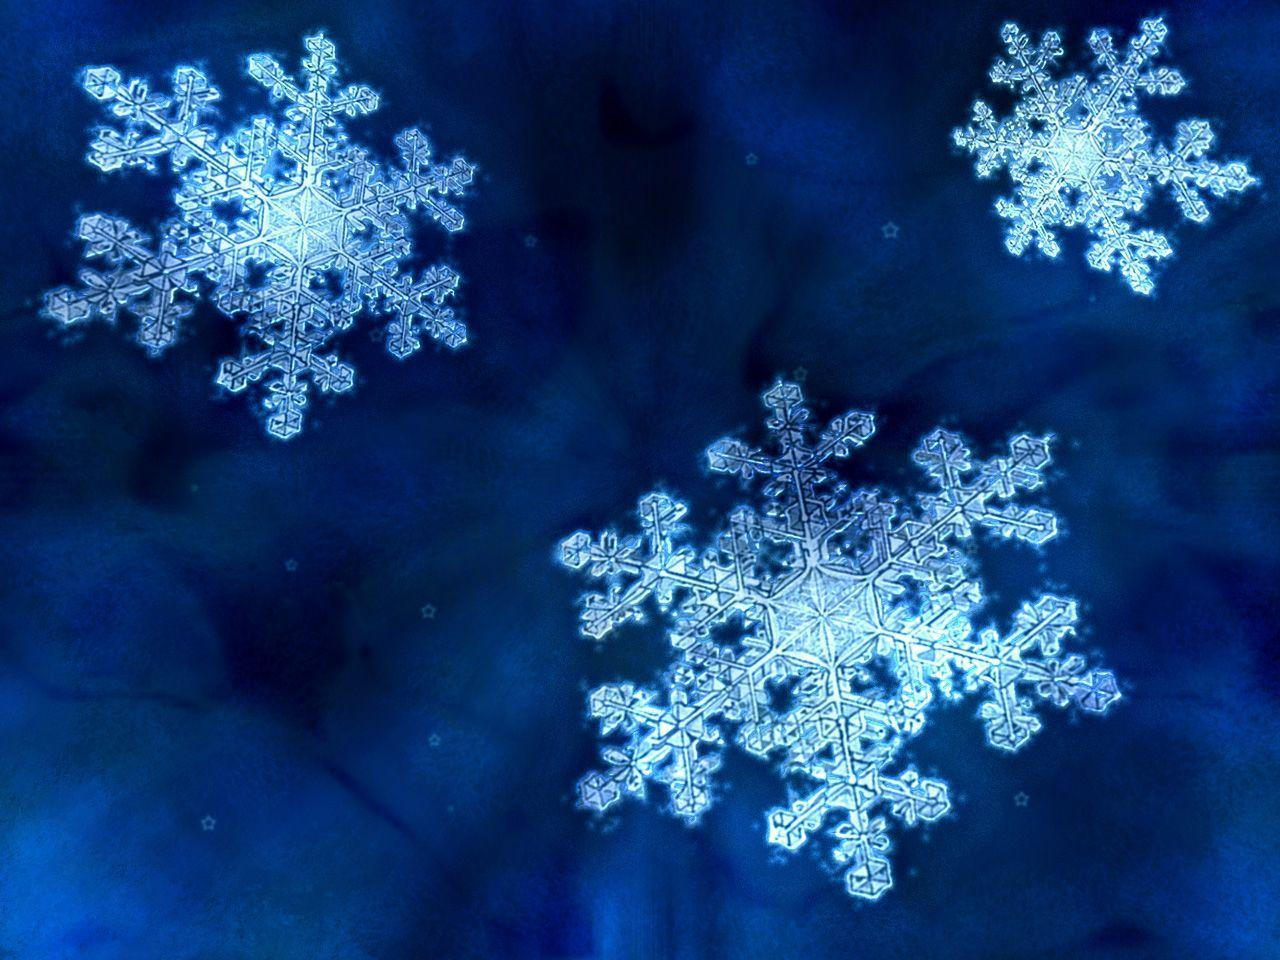 Winter Wallpaper 38 Backgrounds | Wallruru.